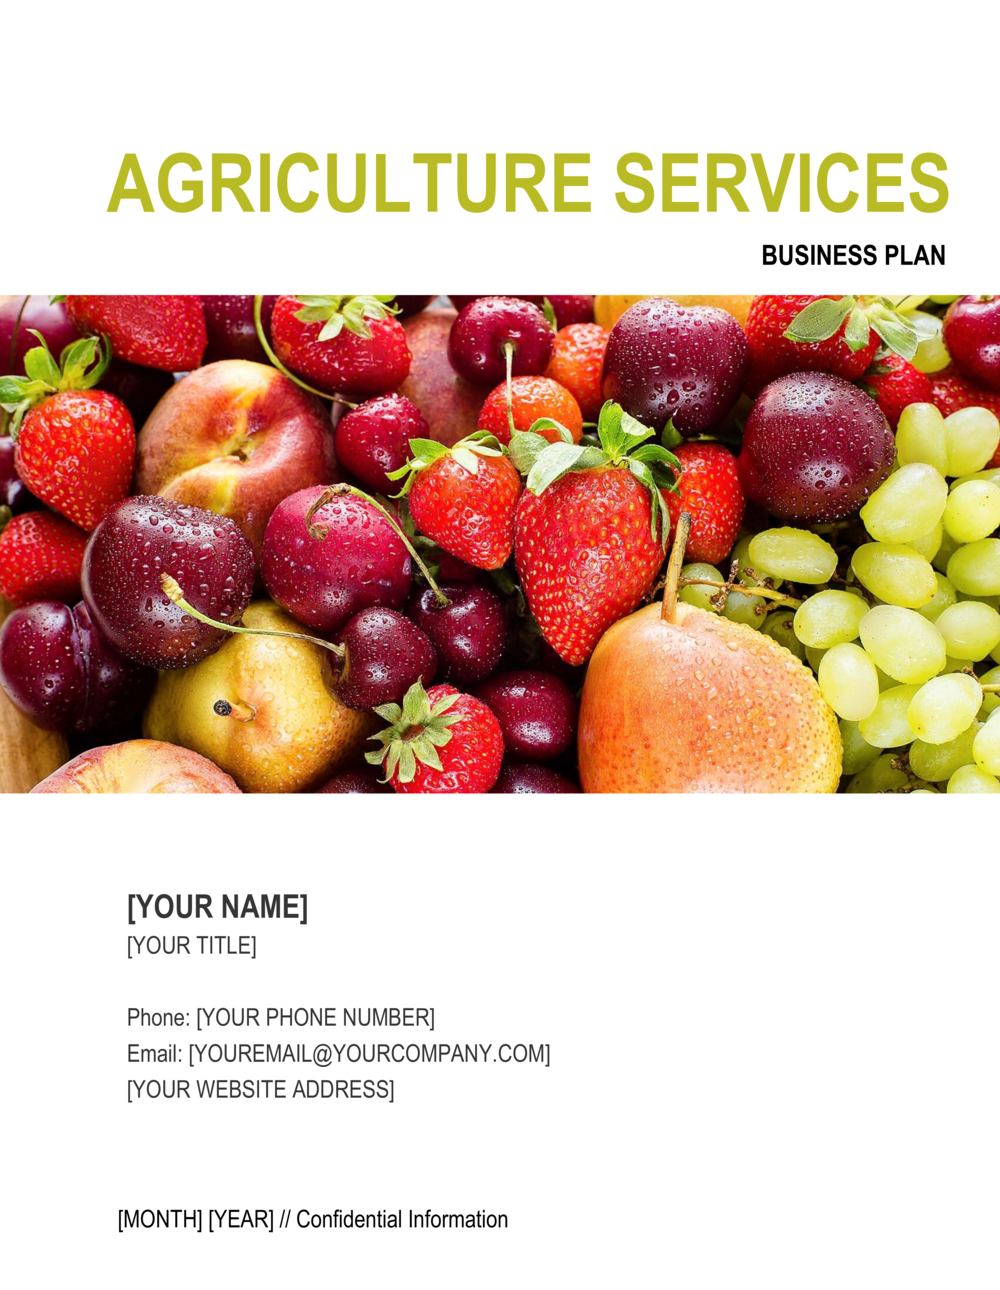 Business-in-a-Box's Agriculture Services Business Plan Template